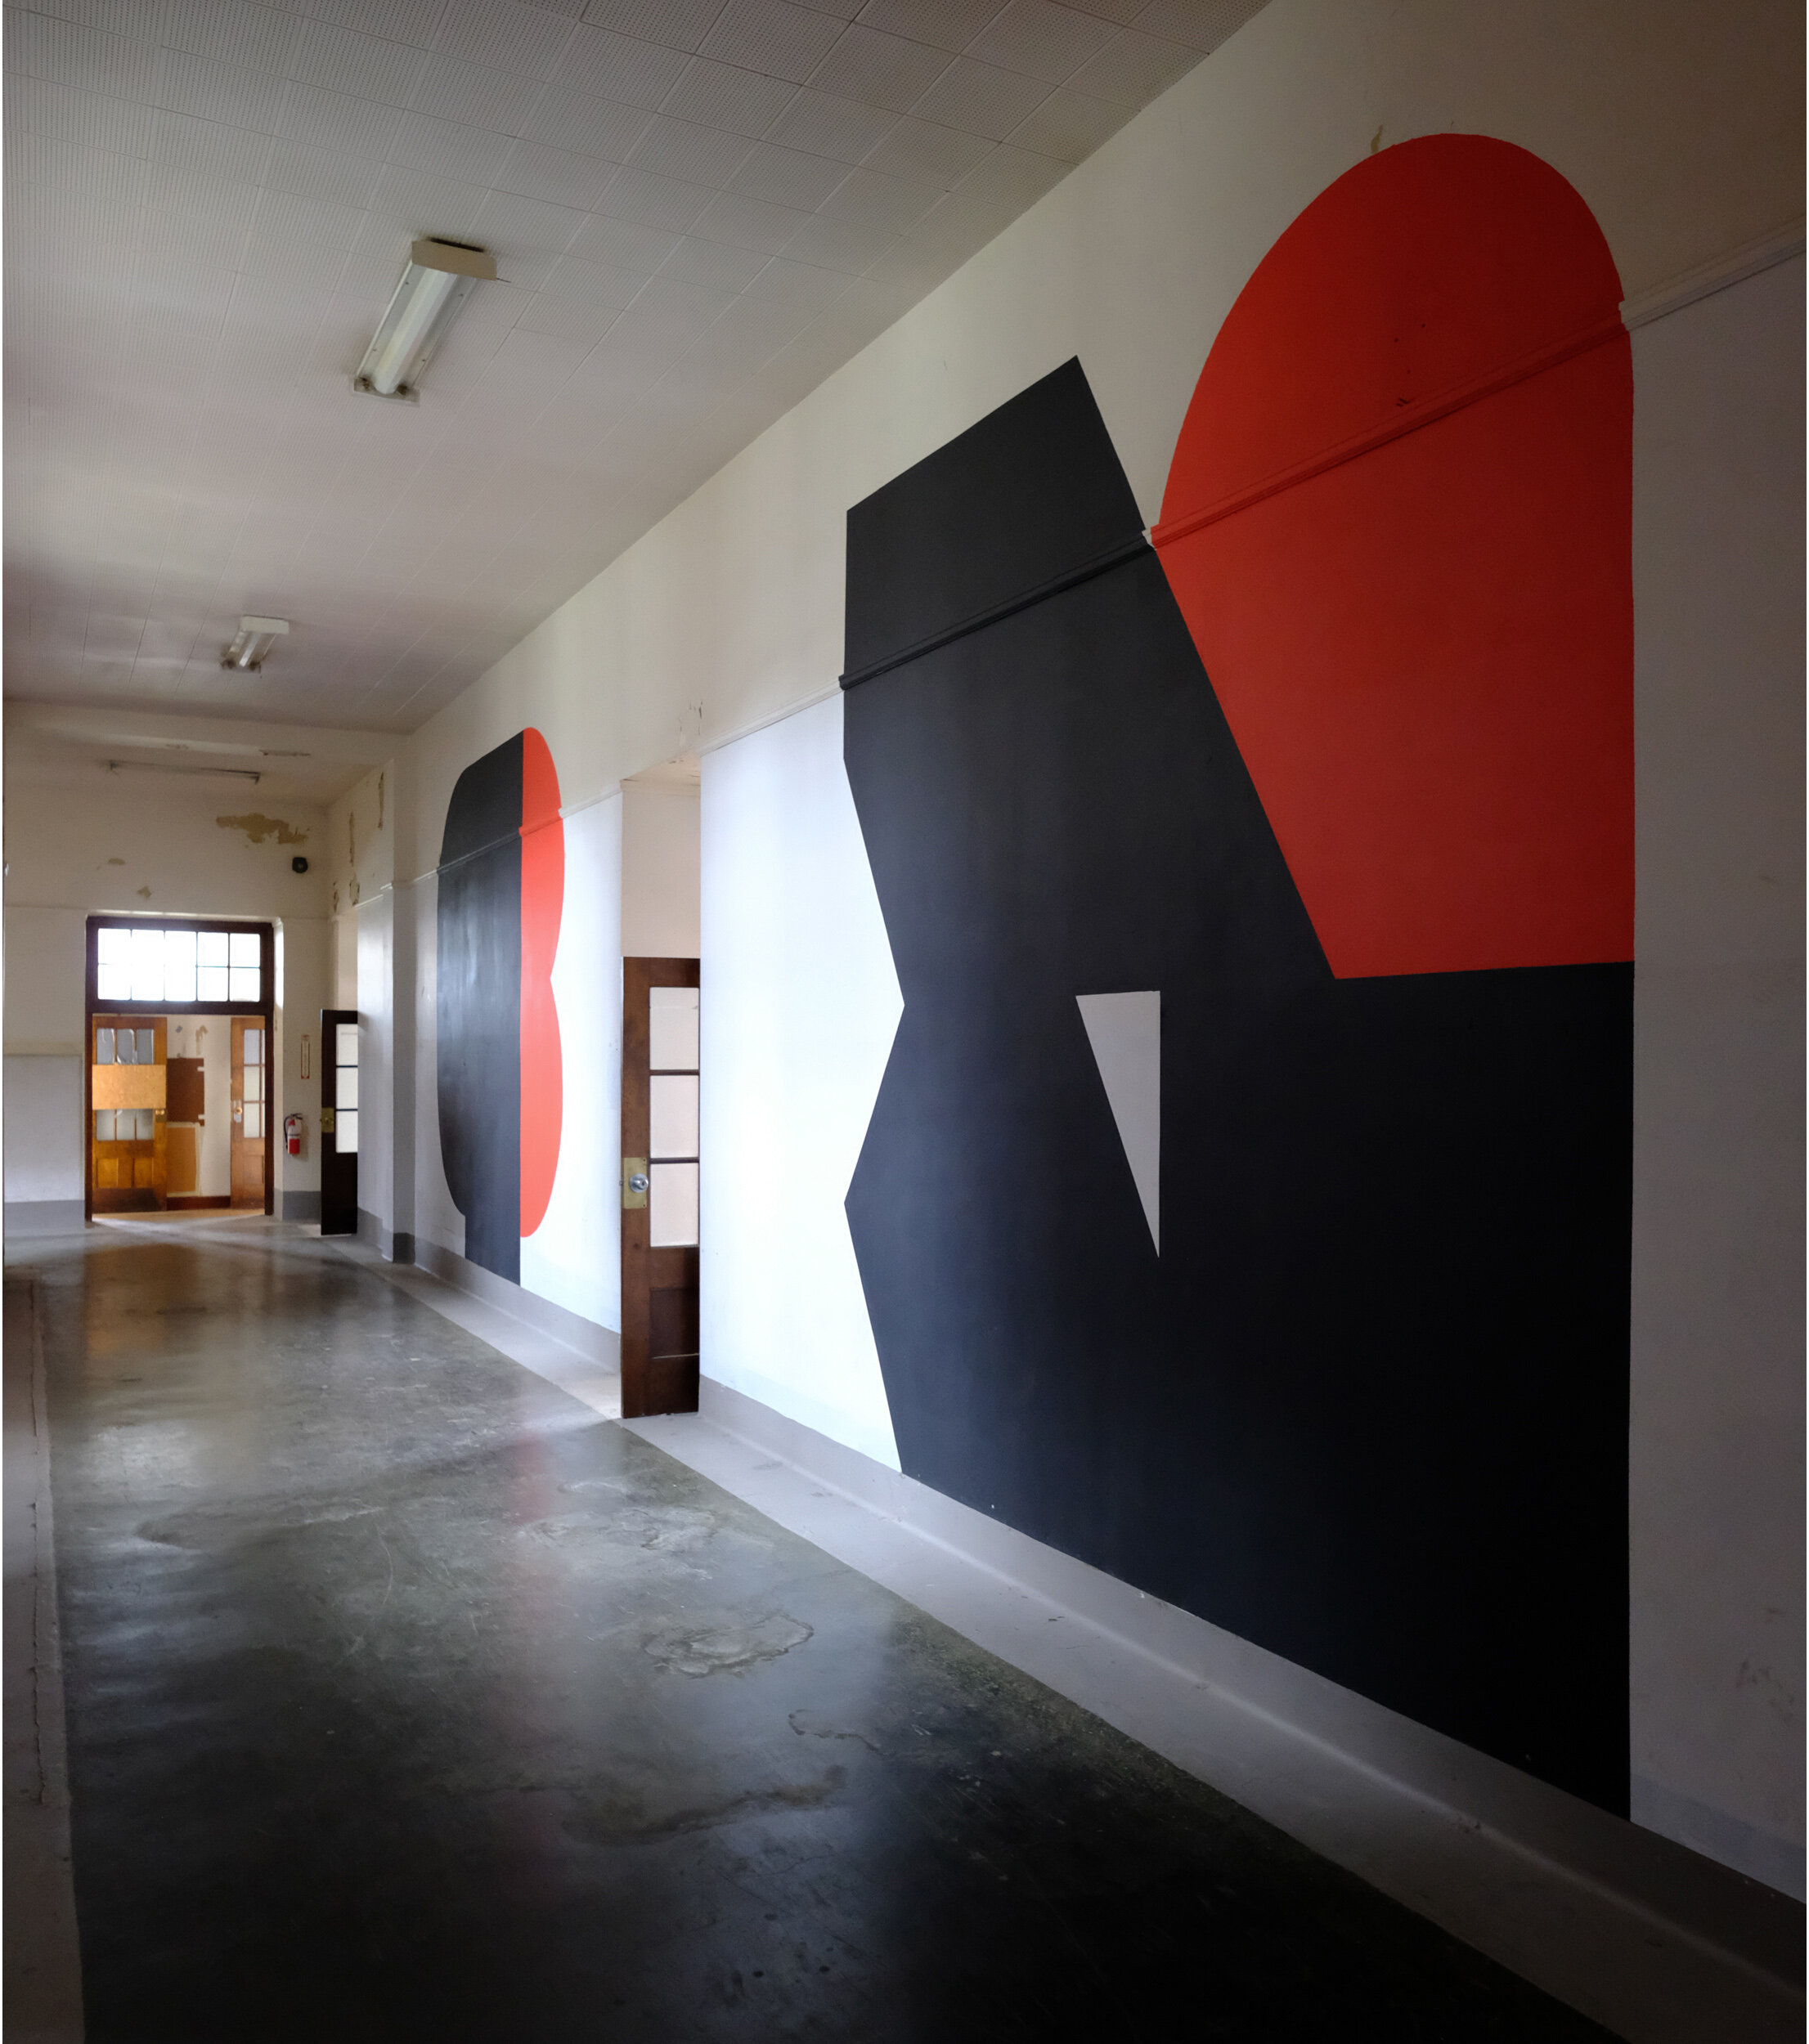 montague-paintings-wall-3_0000_Layer 3.jpg